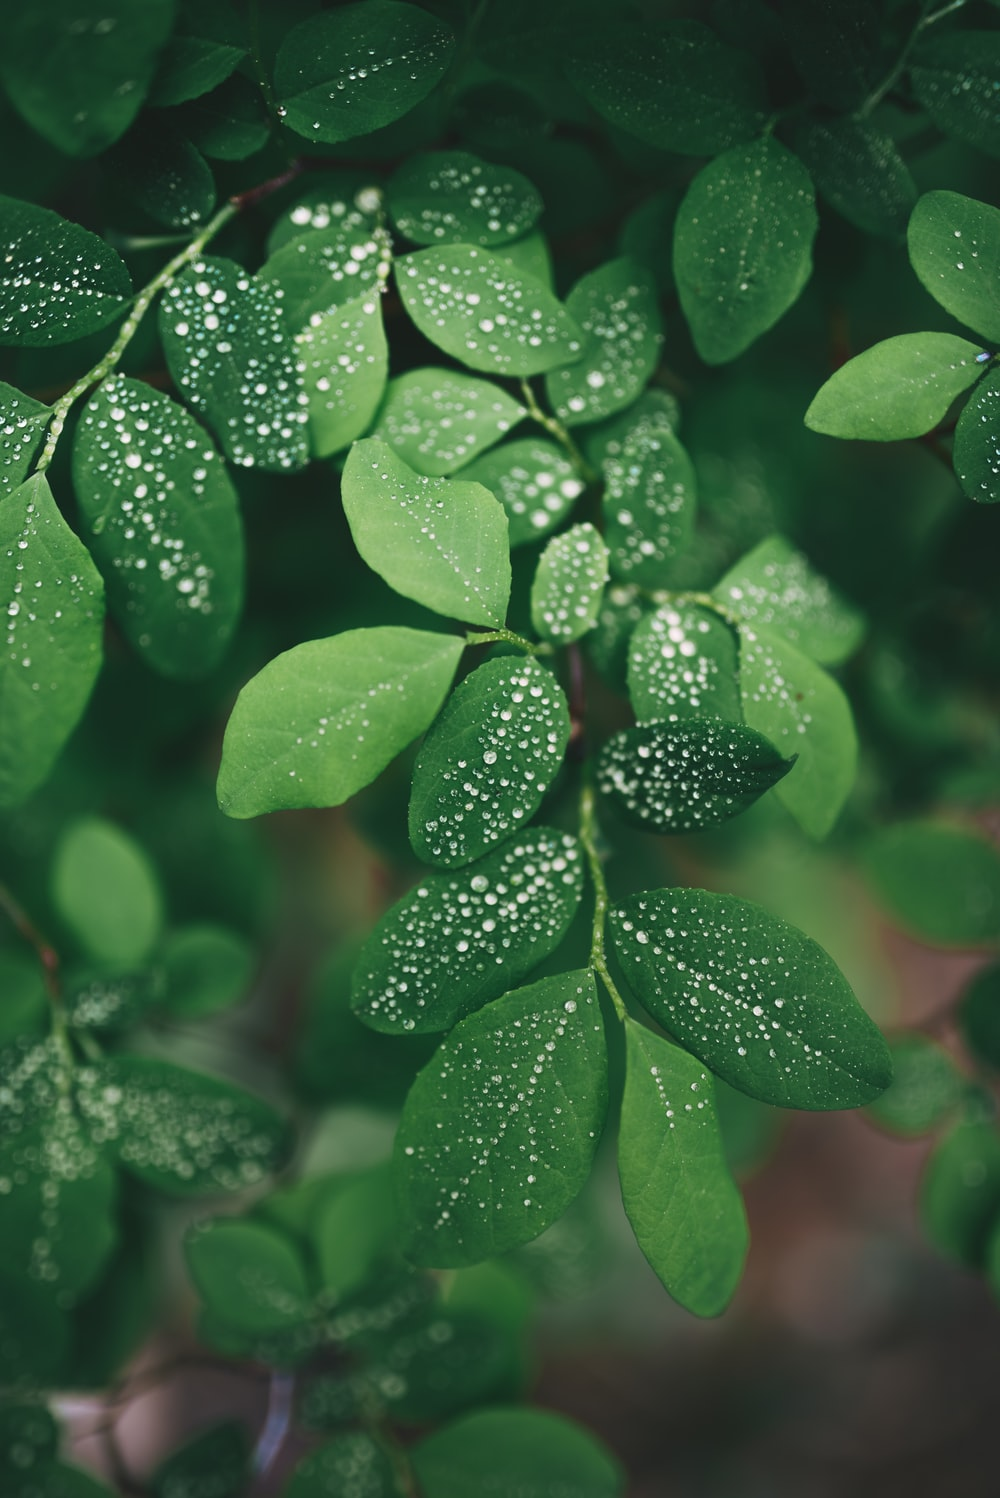 closeup photo of green leaf with water droplets